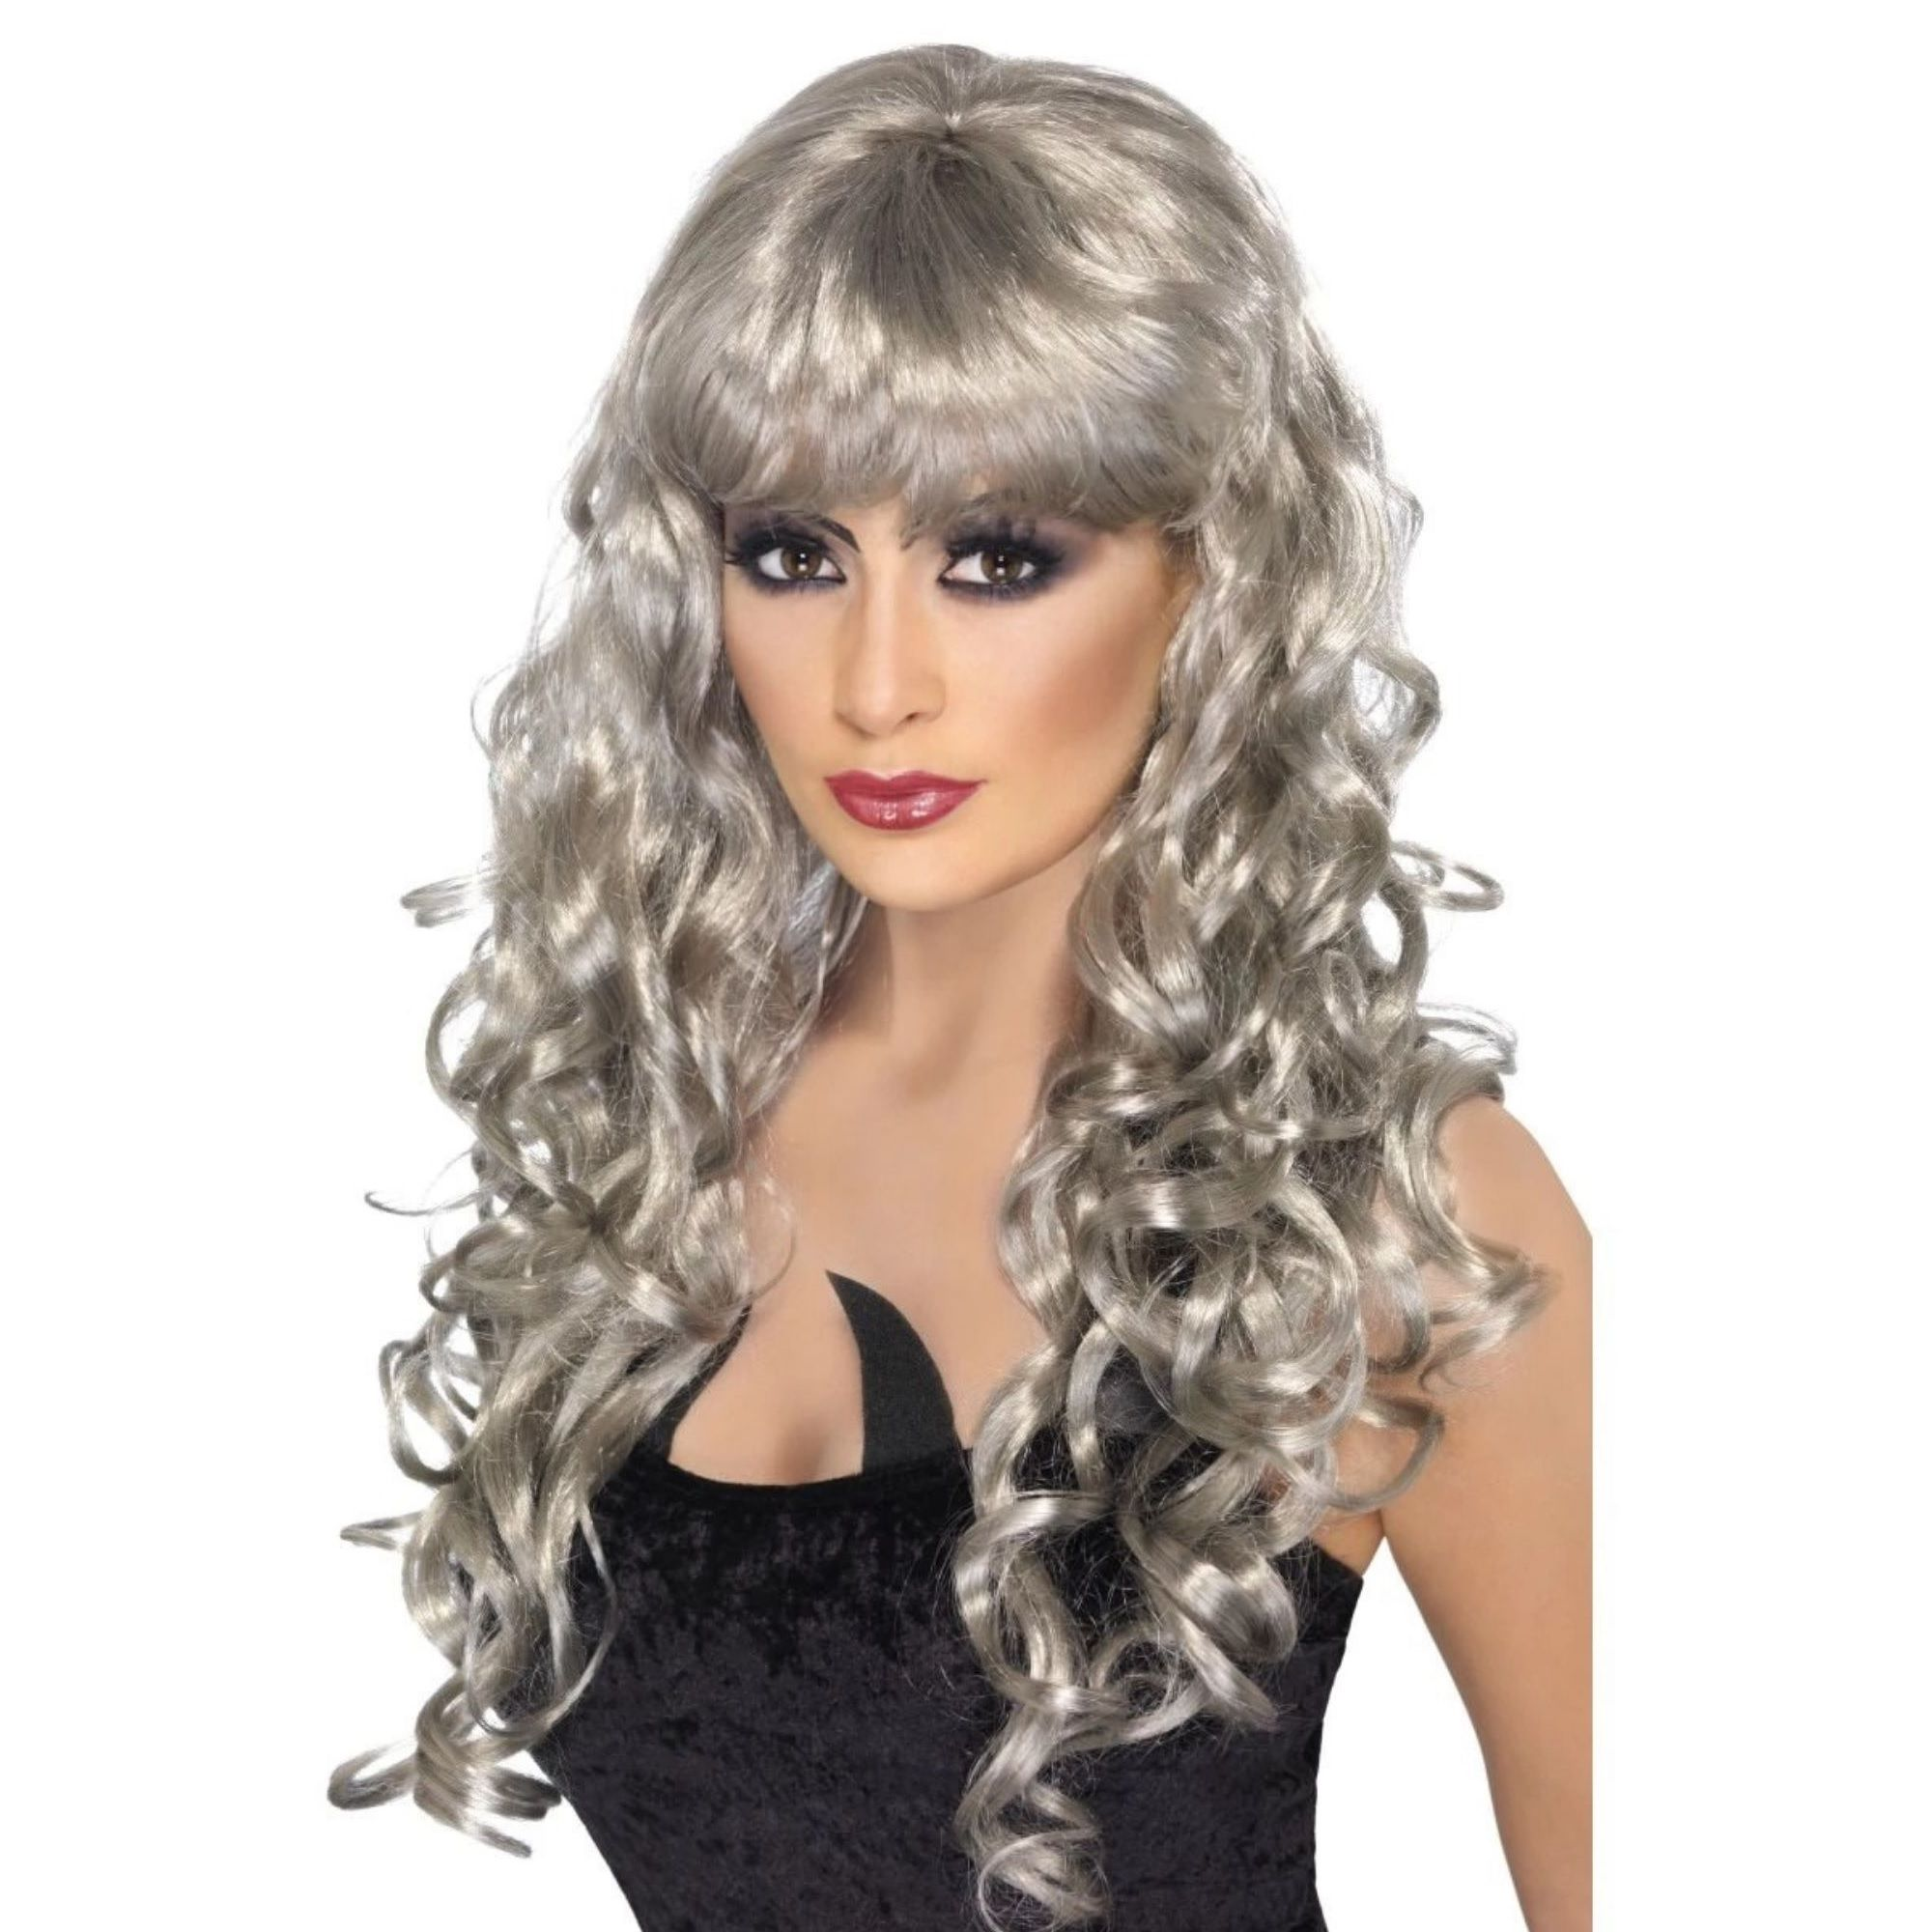 Lace Frontal Wigs For Women Gray Wigs Straight Bundles With Closure Real Hair Topper